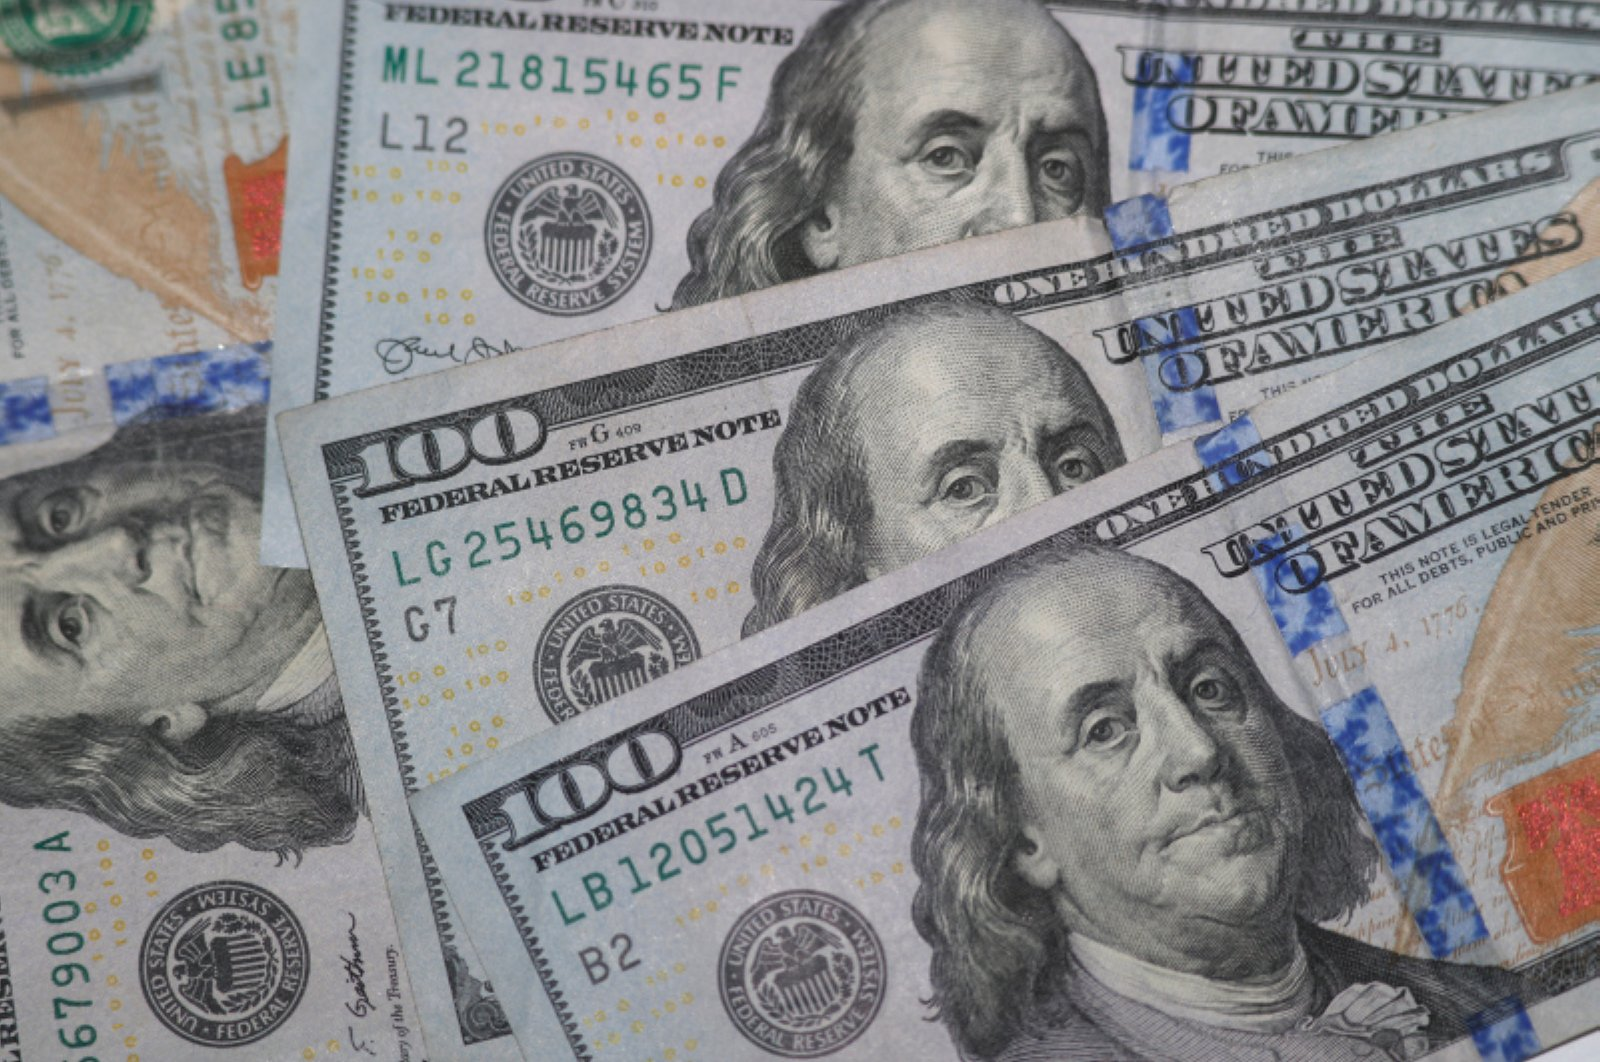 This Jan. 22, 2020, file photo shows the likeness of Benjamin Franklin on $100 bills in Dallas. (AP Photo)